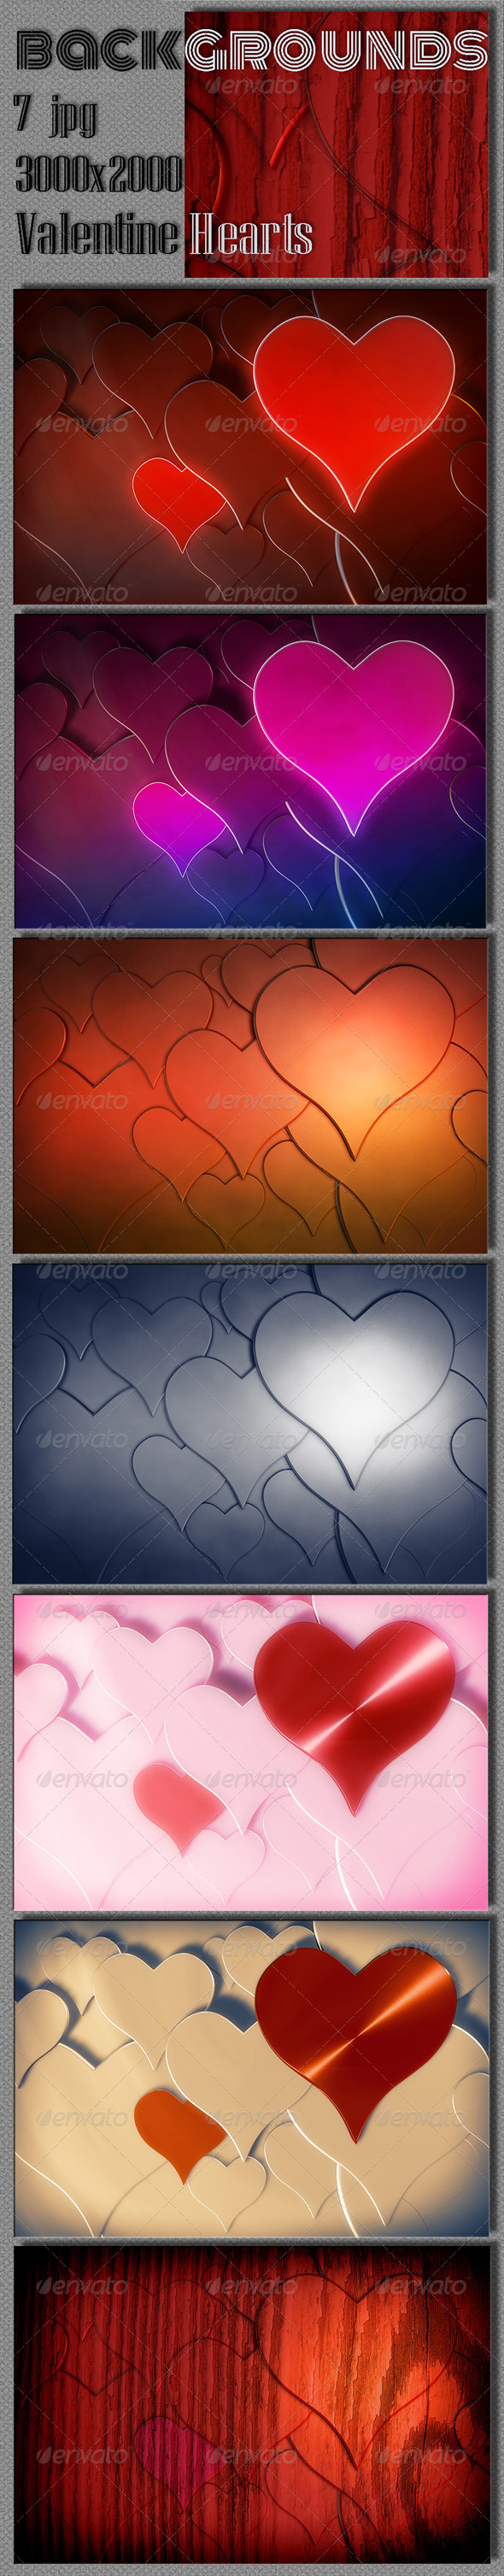 Valentine's Day Backgrounds - 3D Backgrounds